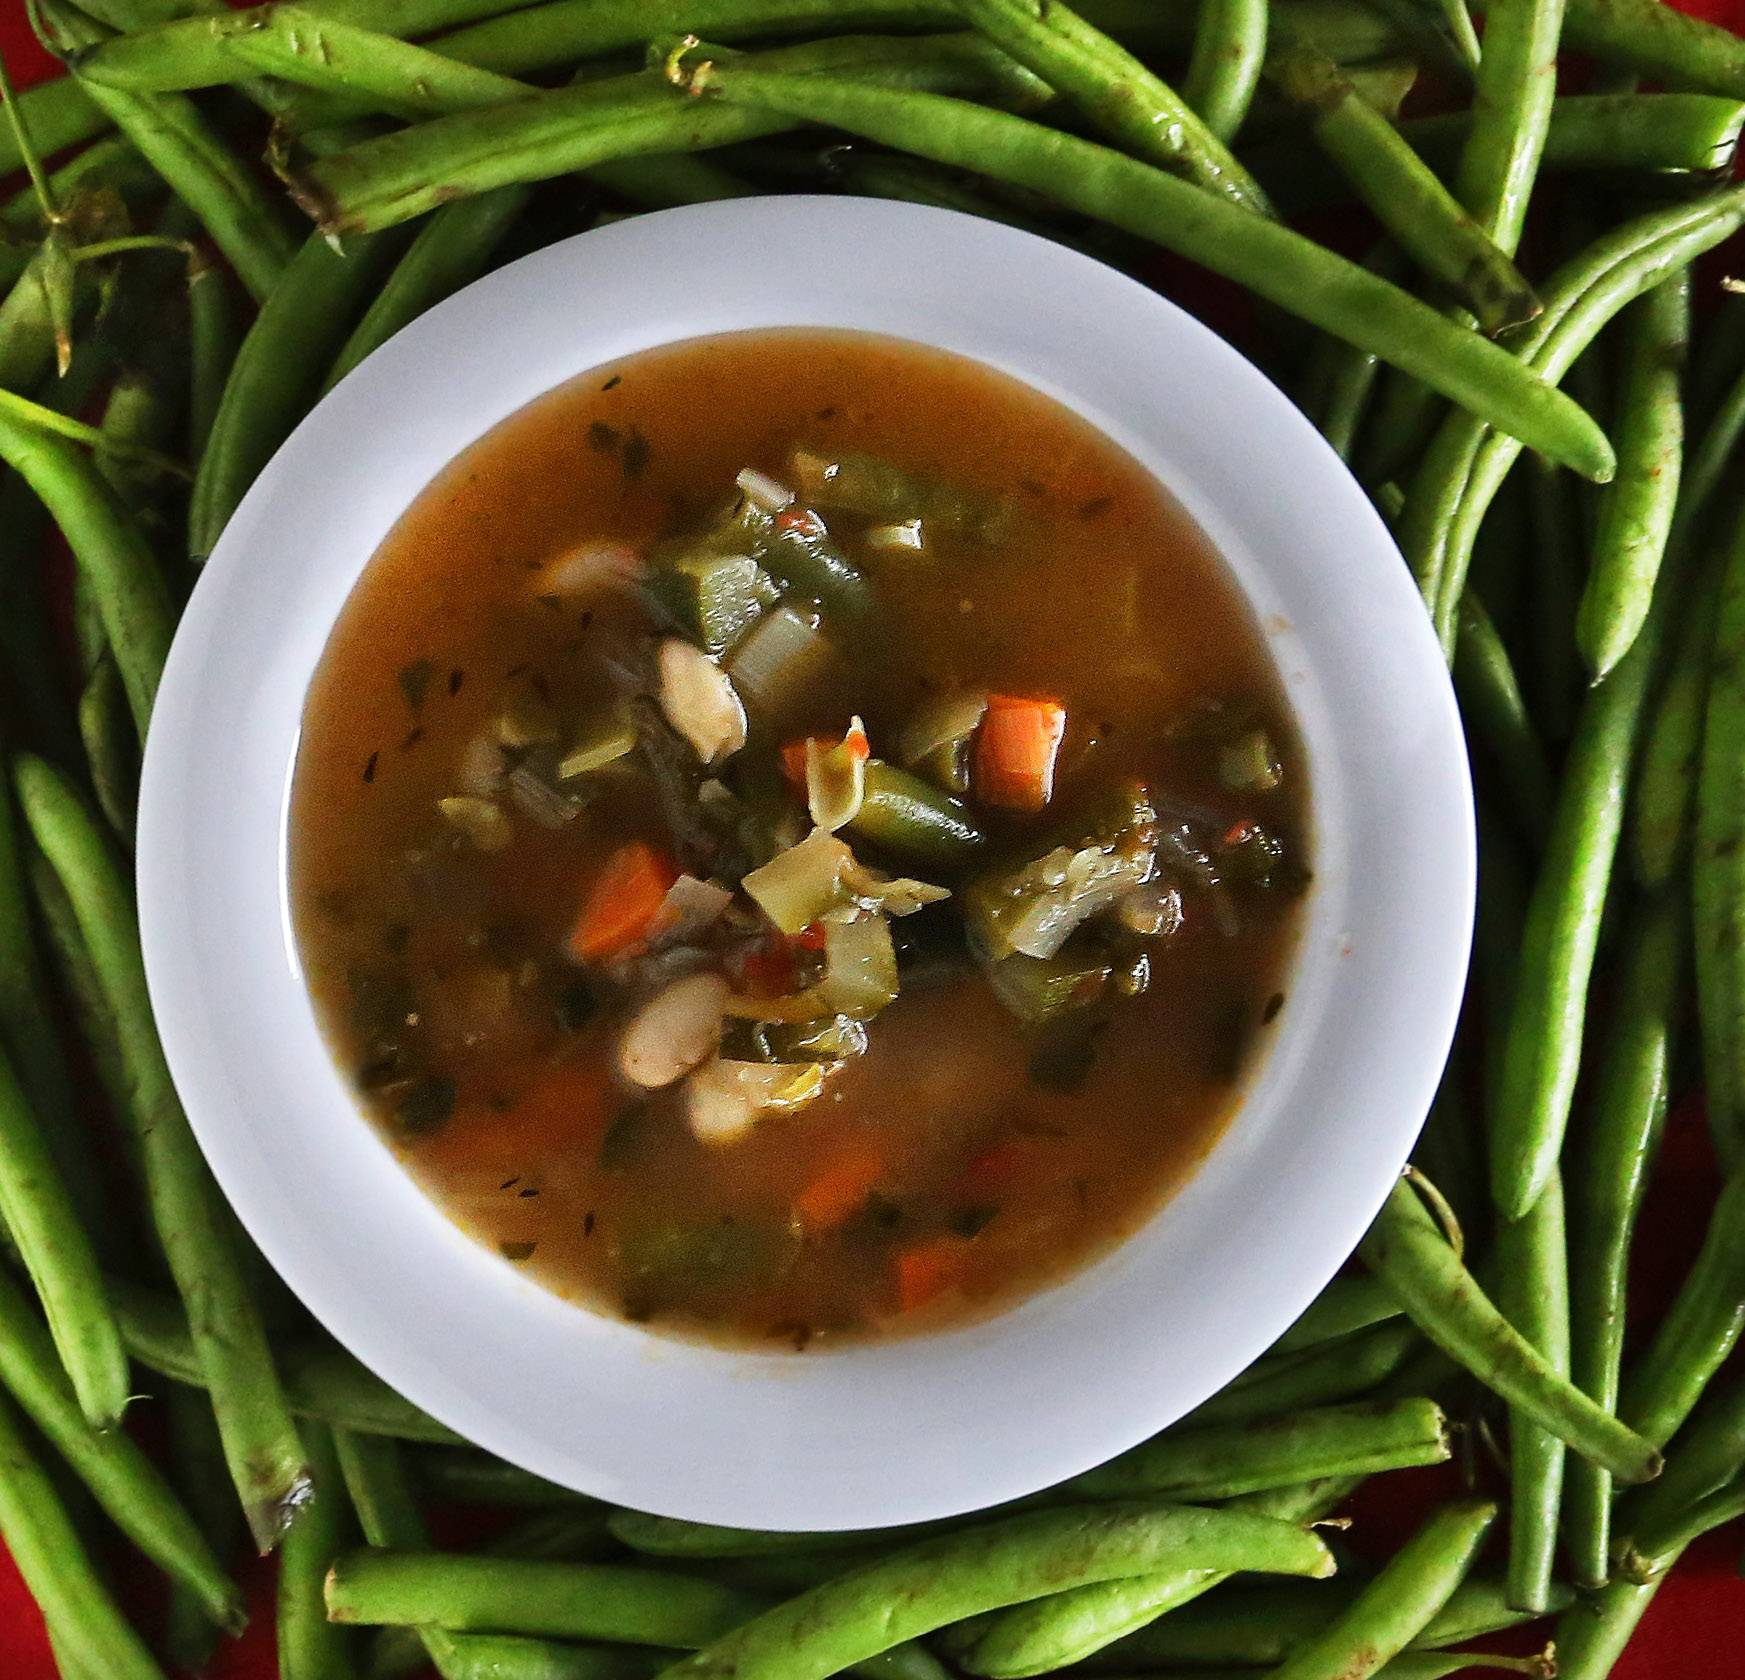 A bounty of summer vegetables swim together in a bowl of soup inspired by famed restaurateur Alice Waters.